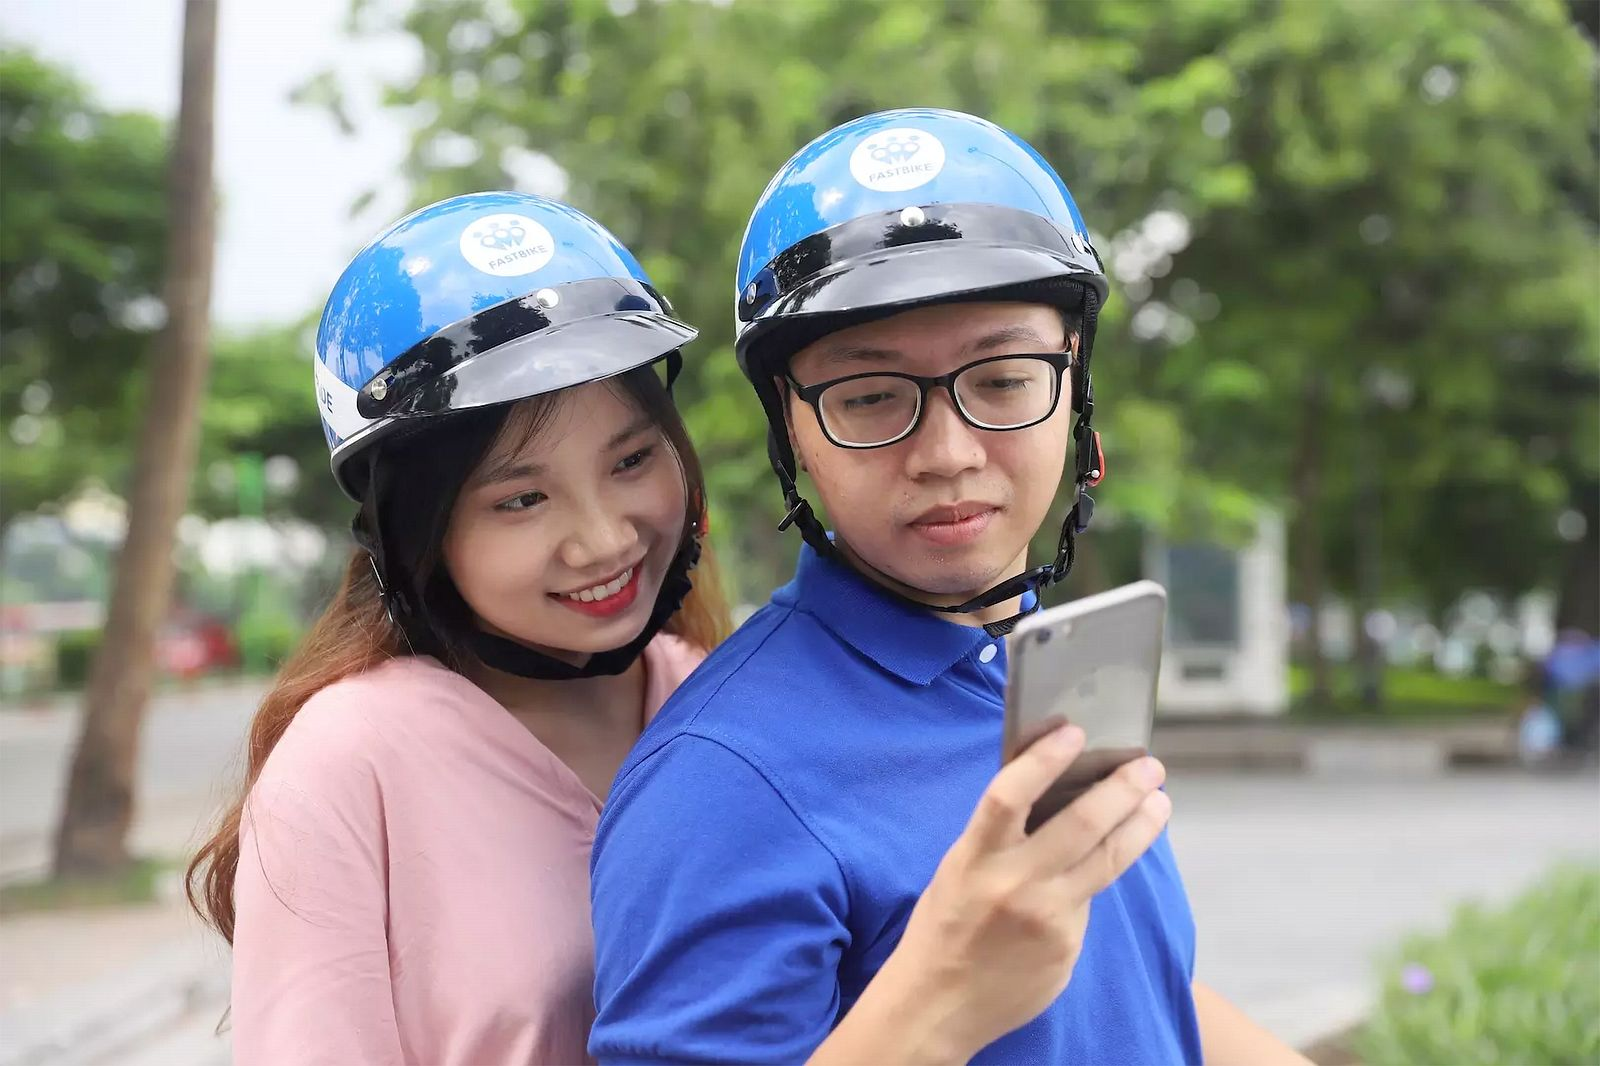 Unknown in Vietnam, Local Ride-Hailing App FastGo to Expand